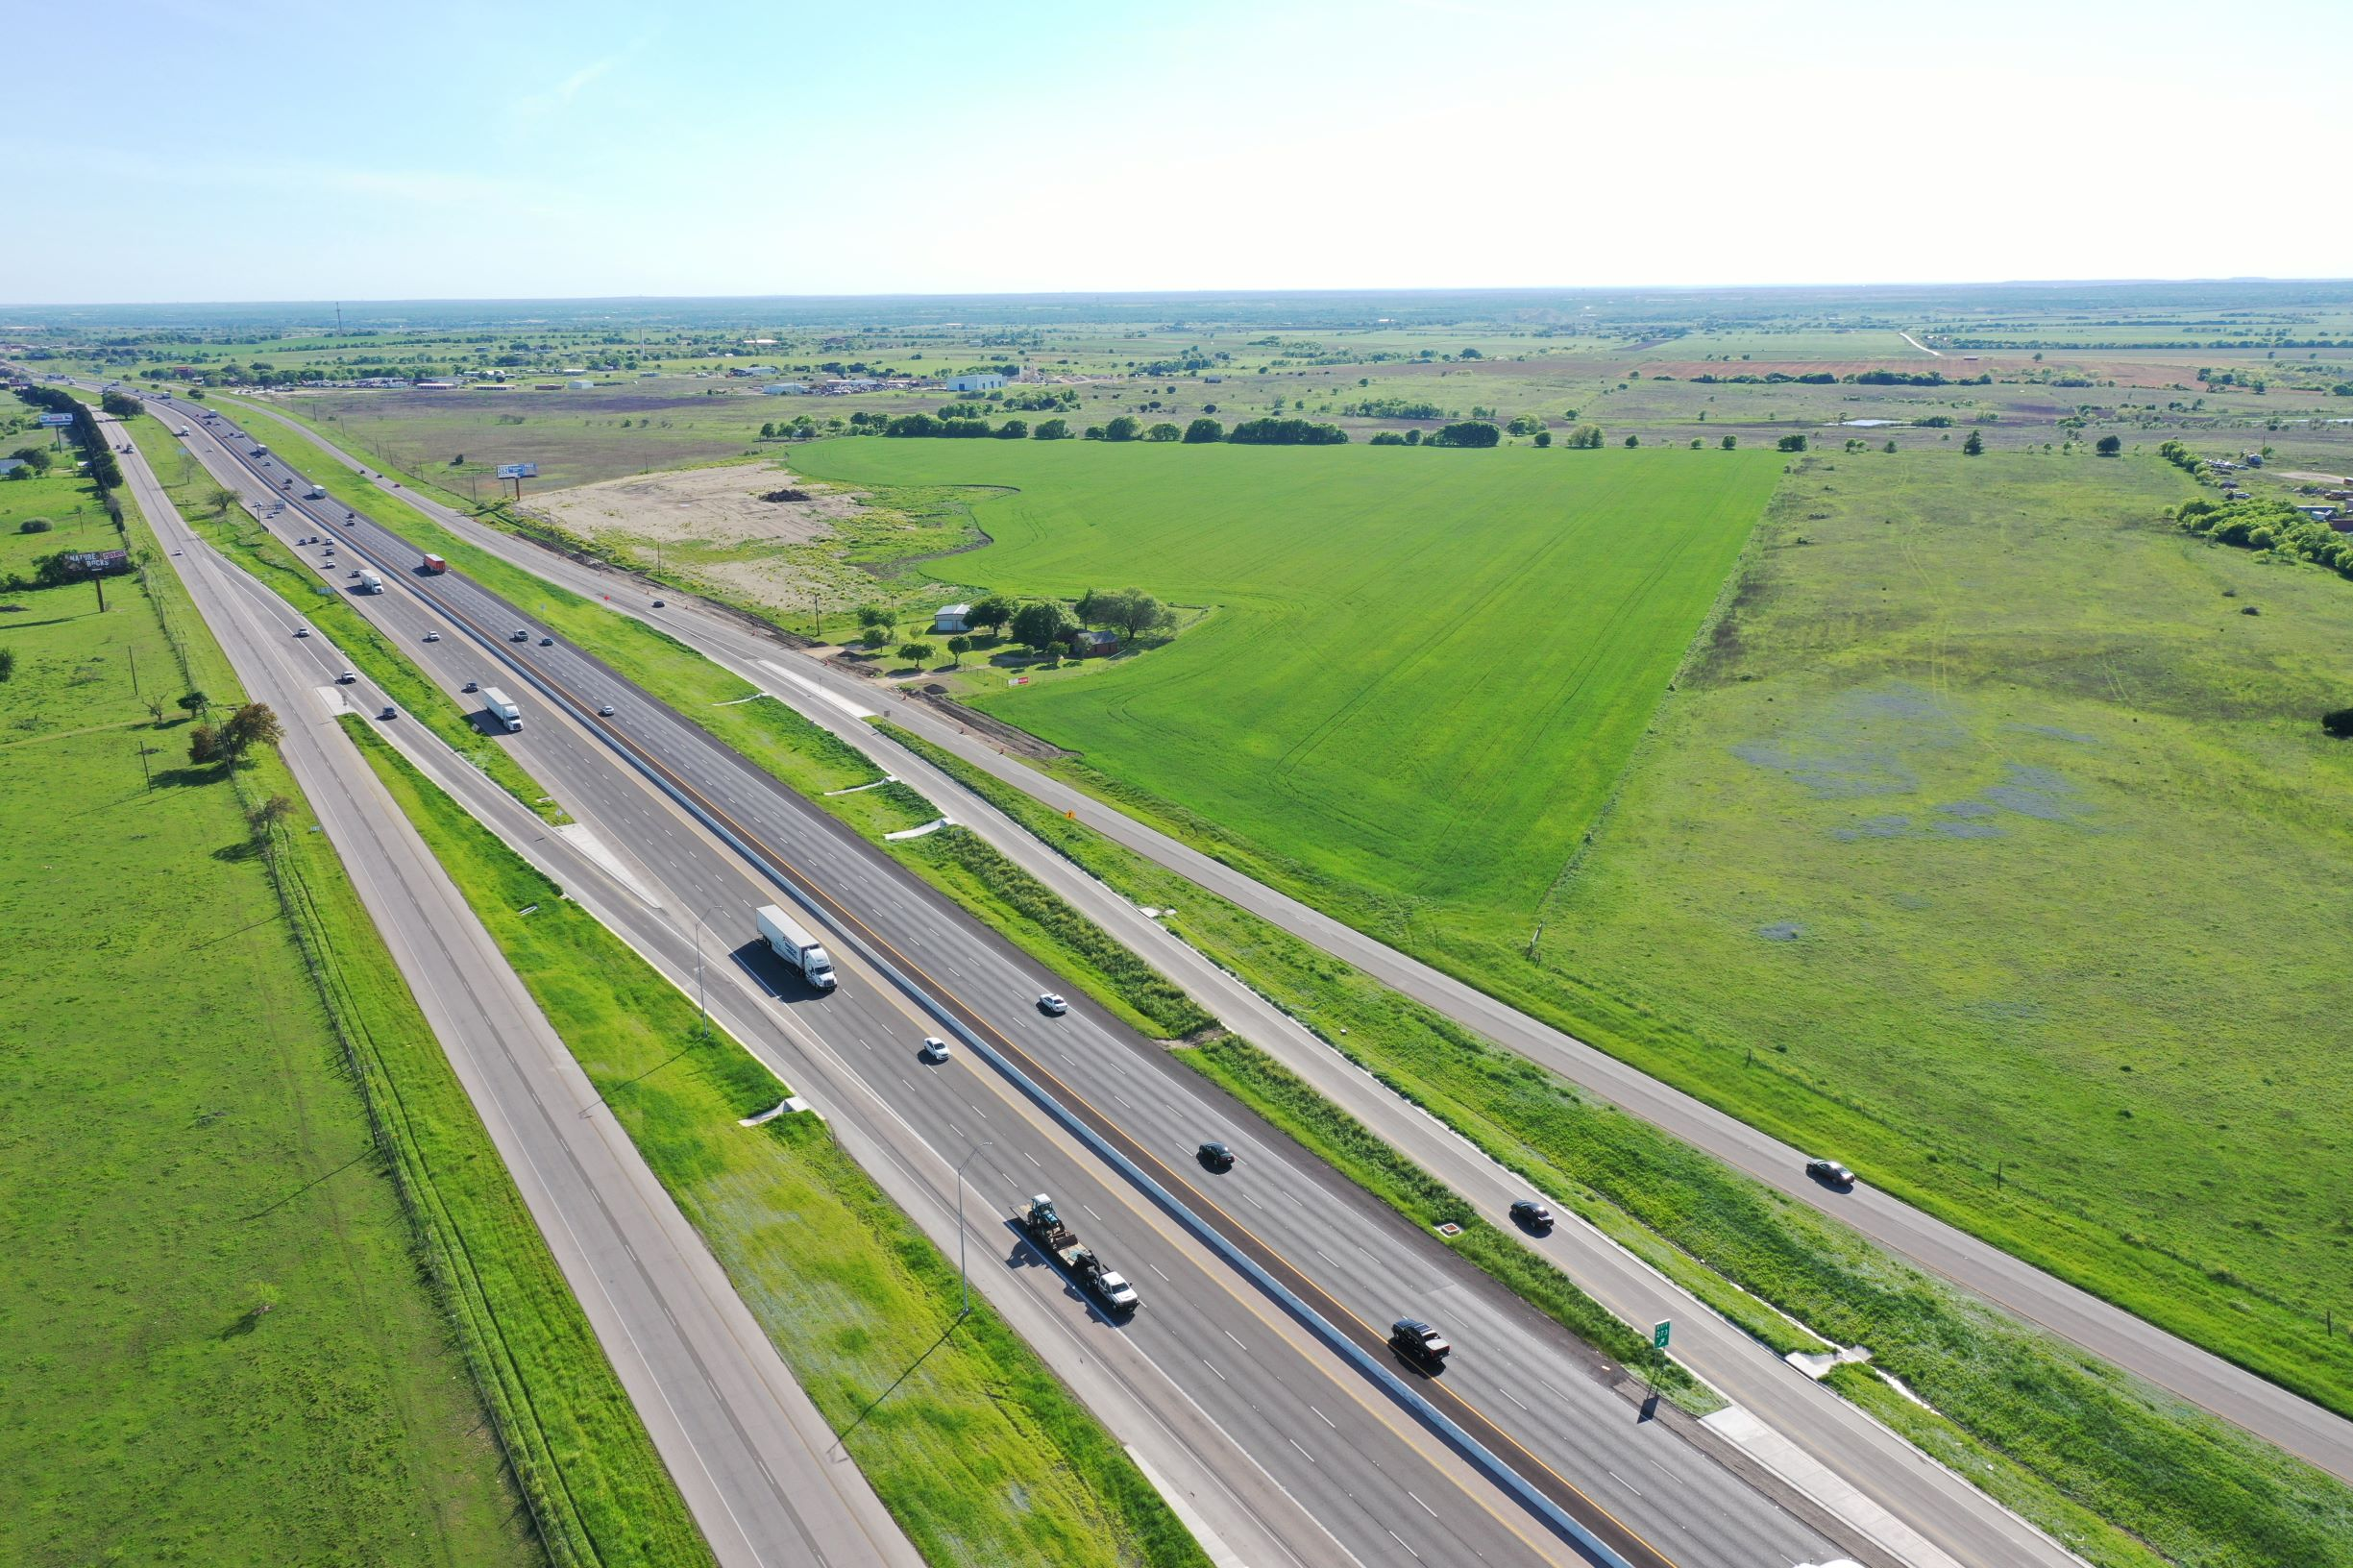 New Ramps south of Bud Stockton Loop - April 2, 2020